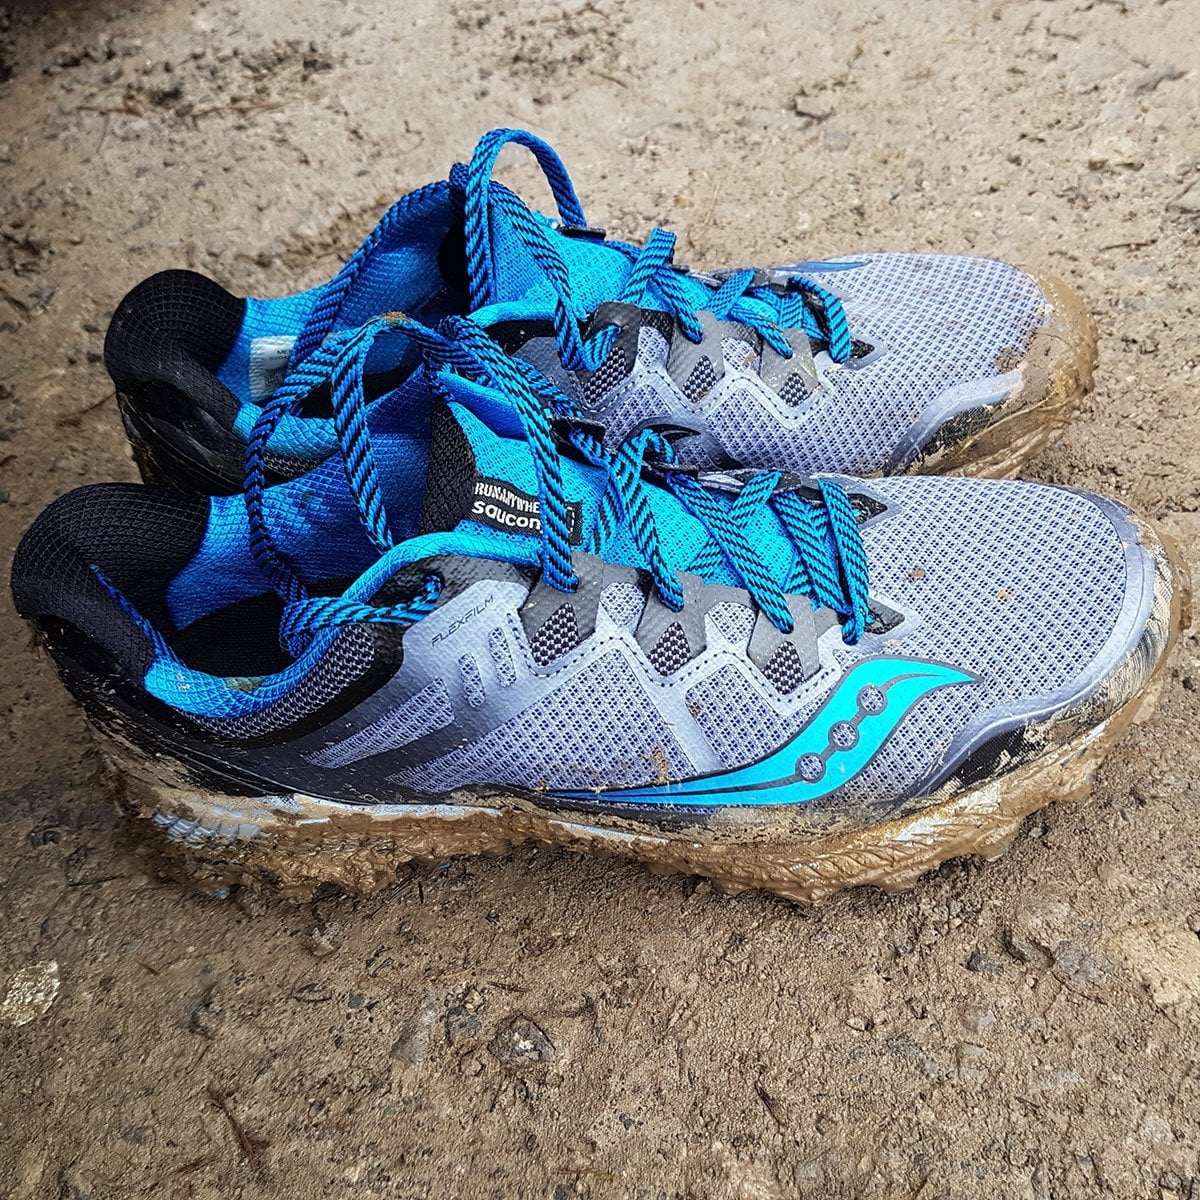 Saucony Peregrine 8 Trail Shoe Review and Rating